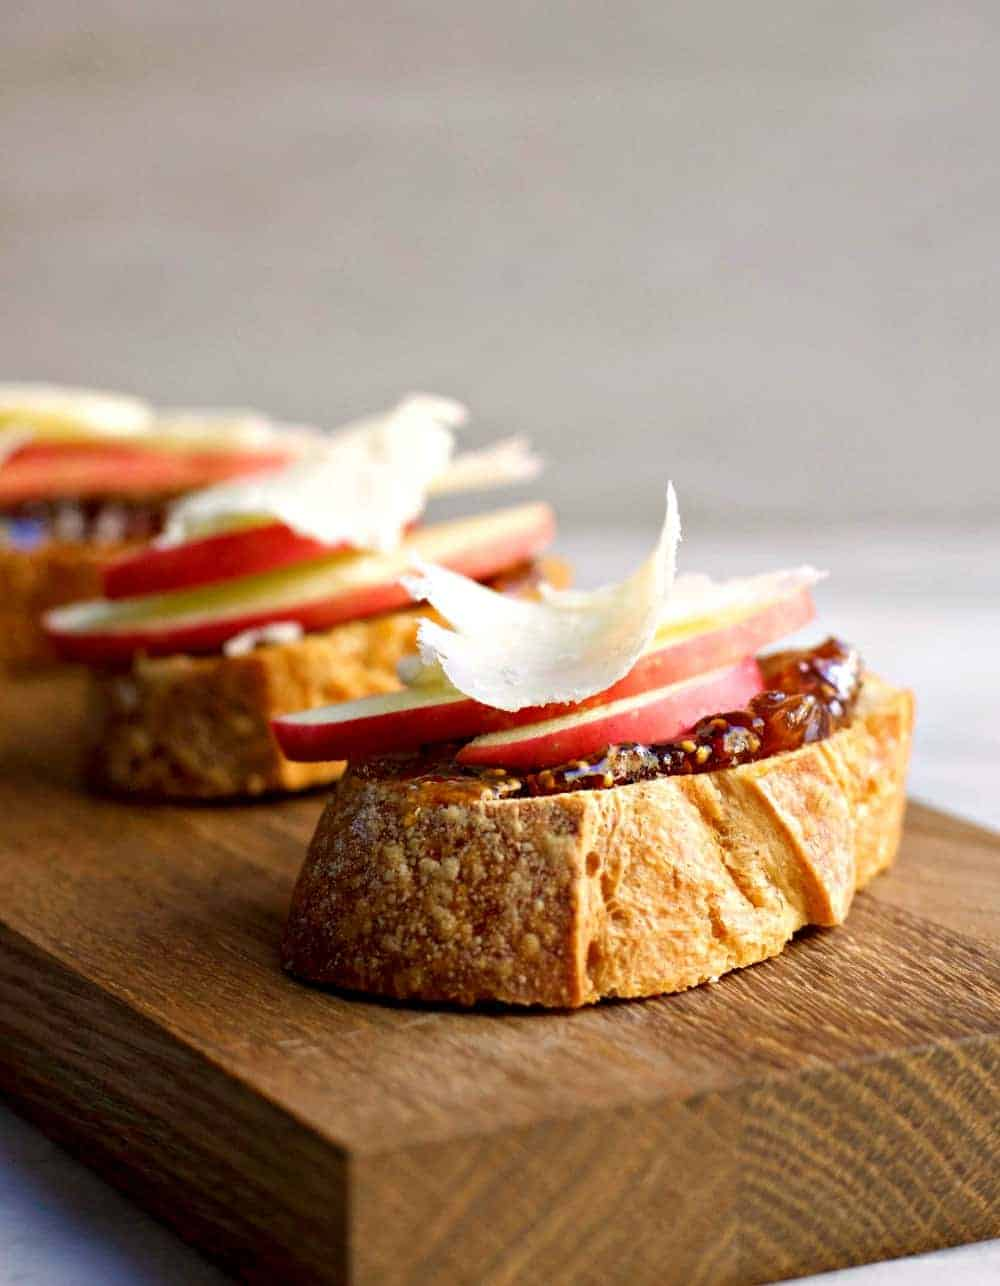 Apple Crostini with Fig Jam and Pecorino served on a wooden board